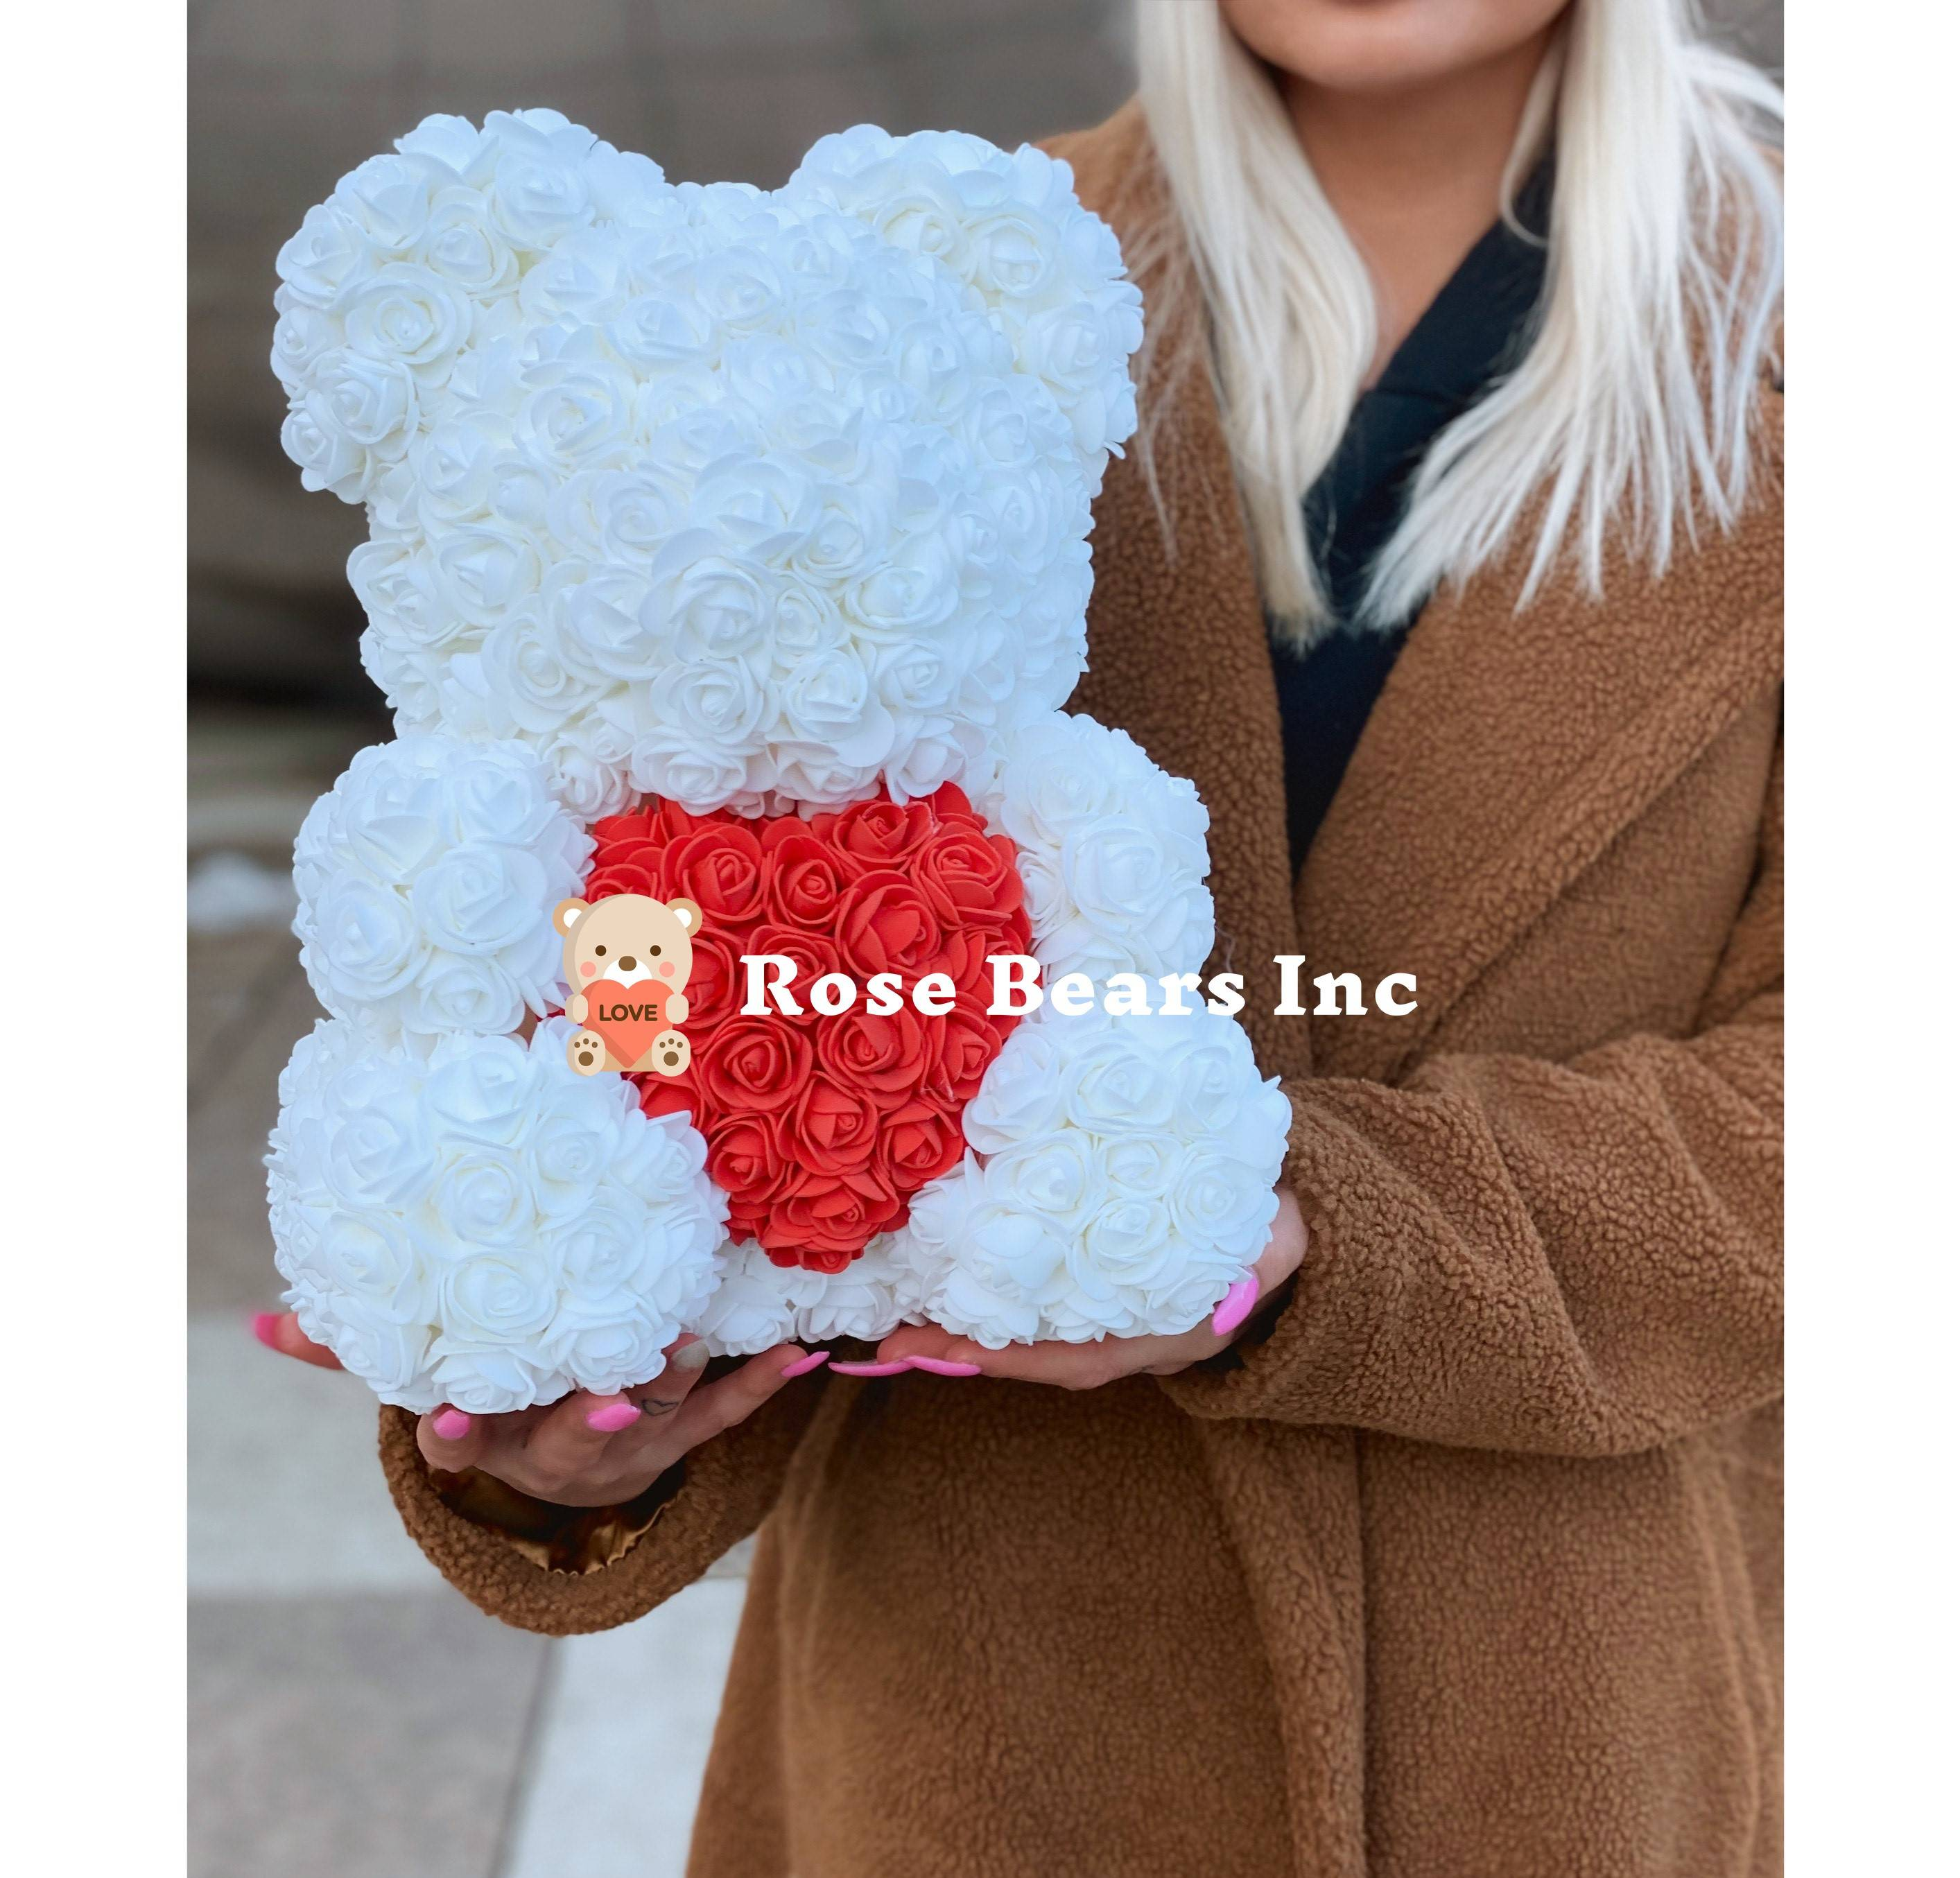 rose bears inc, white rose bear